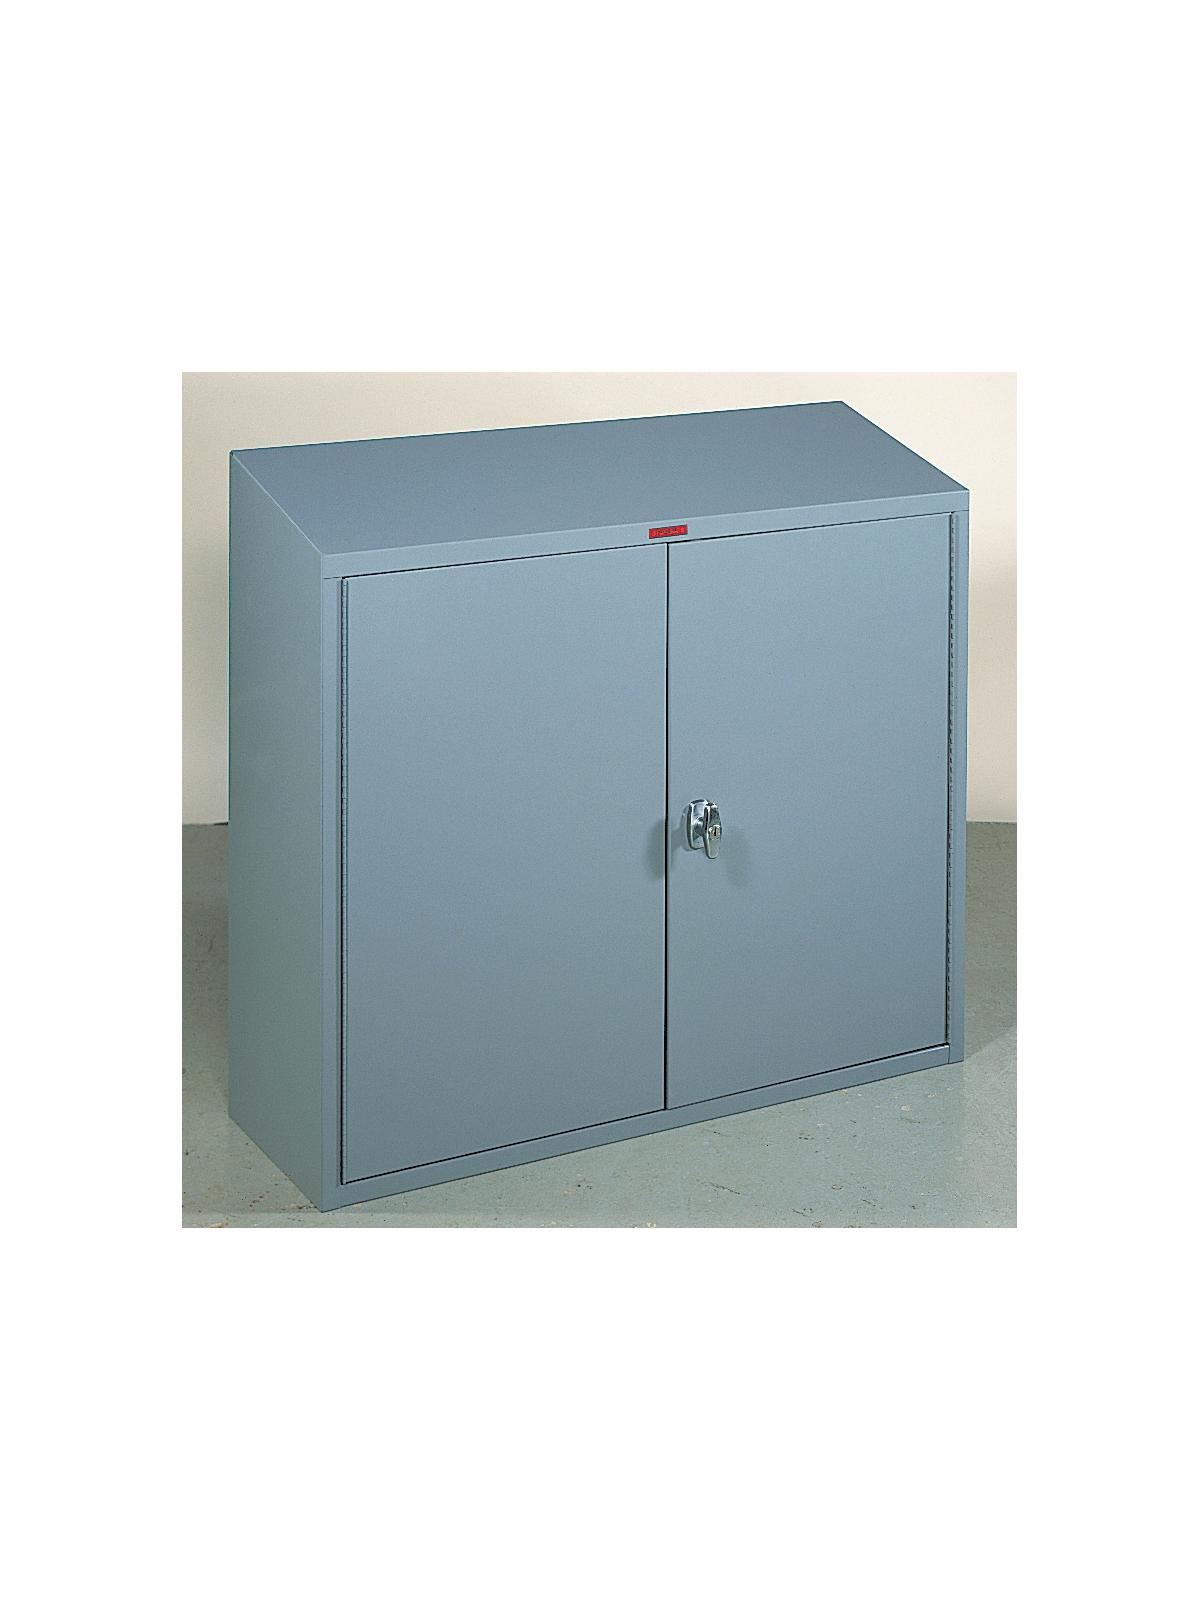 Slope Top Wall Cabinet At Nationwide Industrial Supply Llc